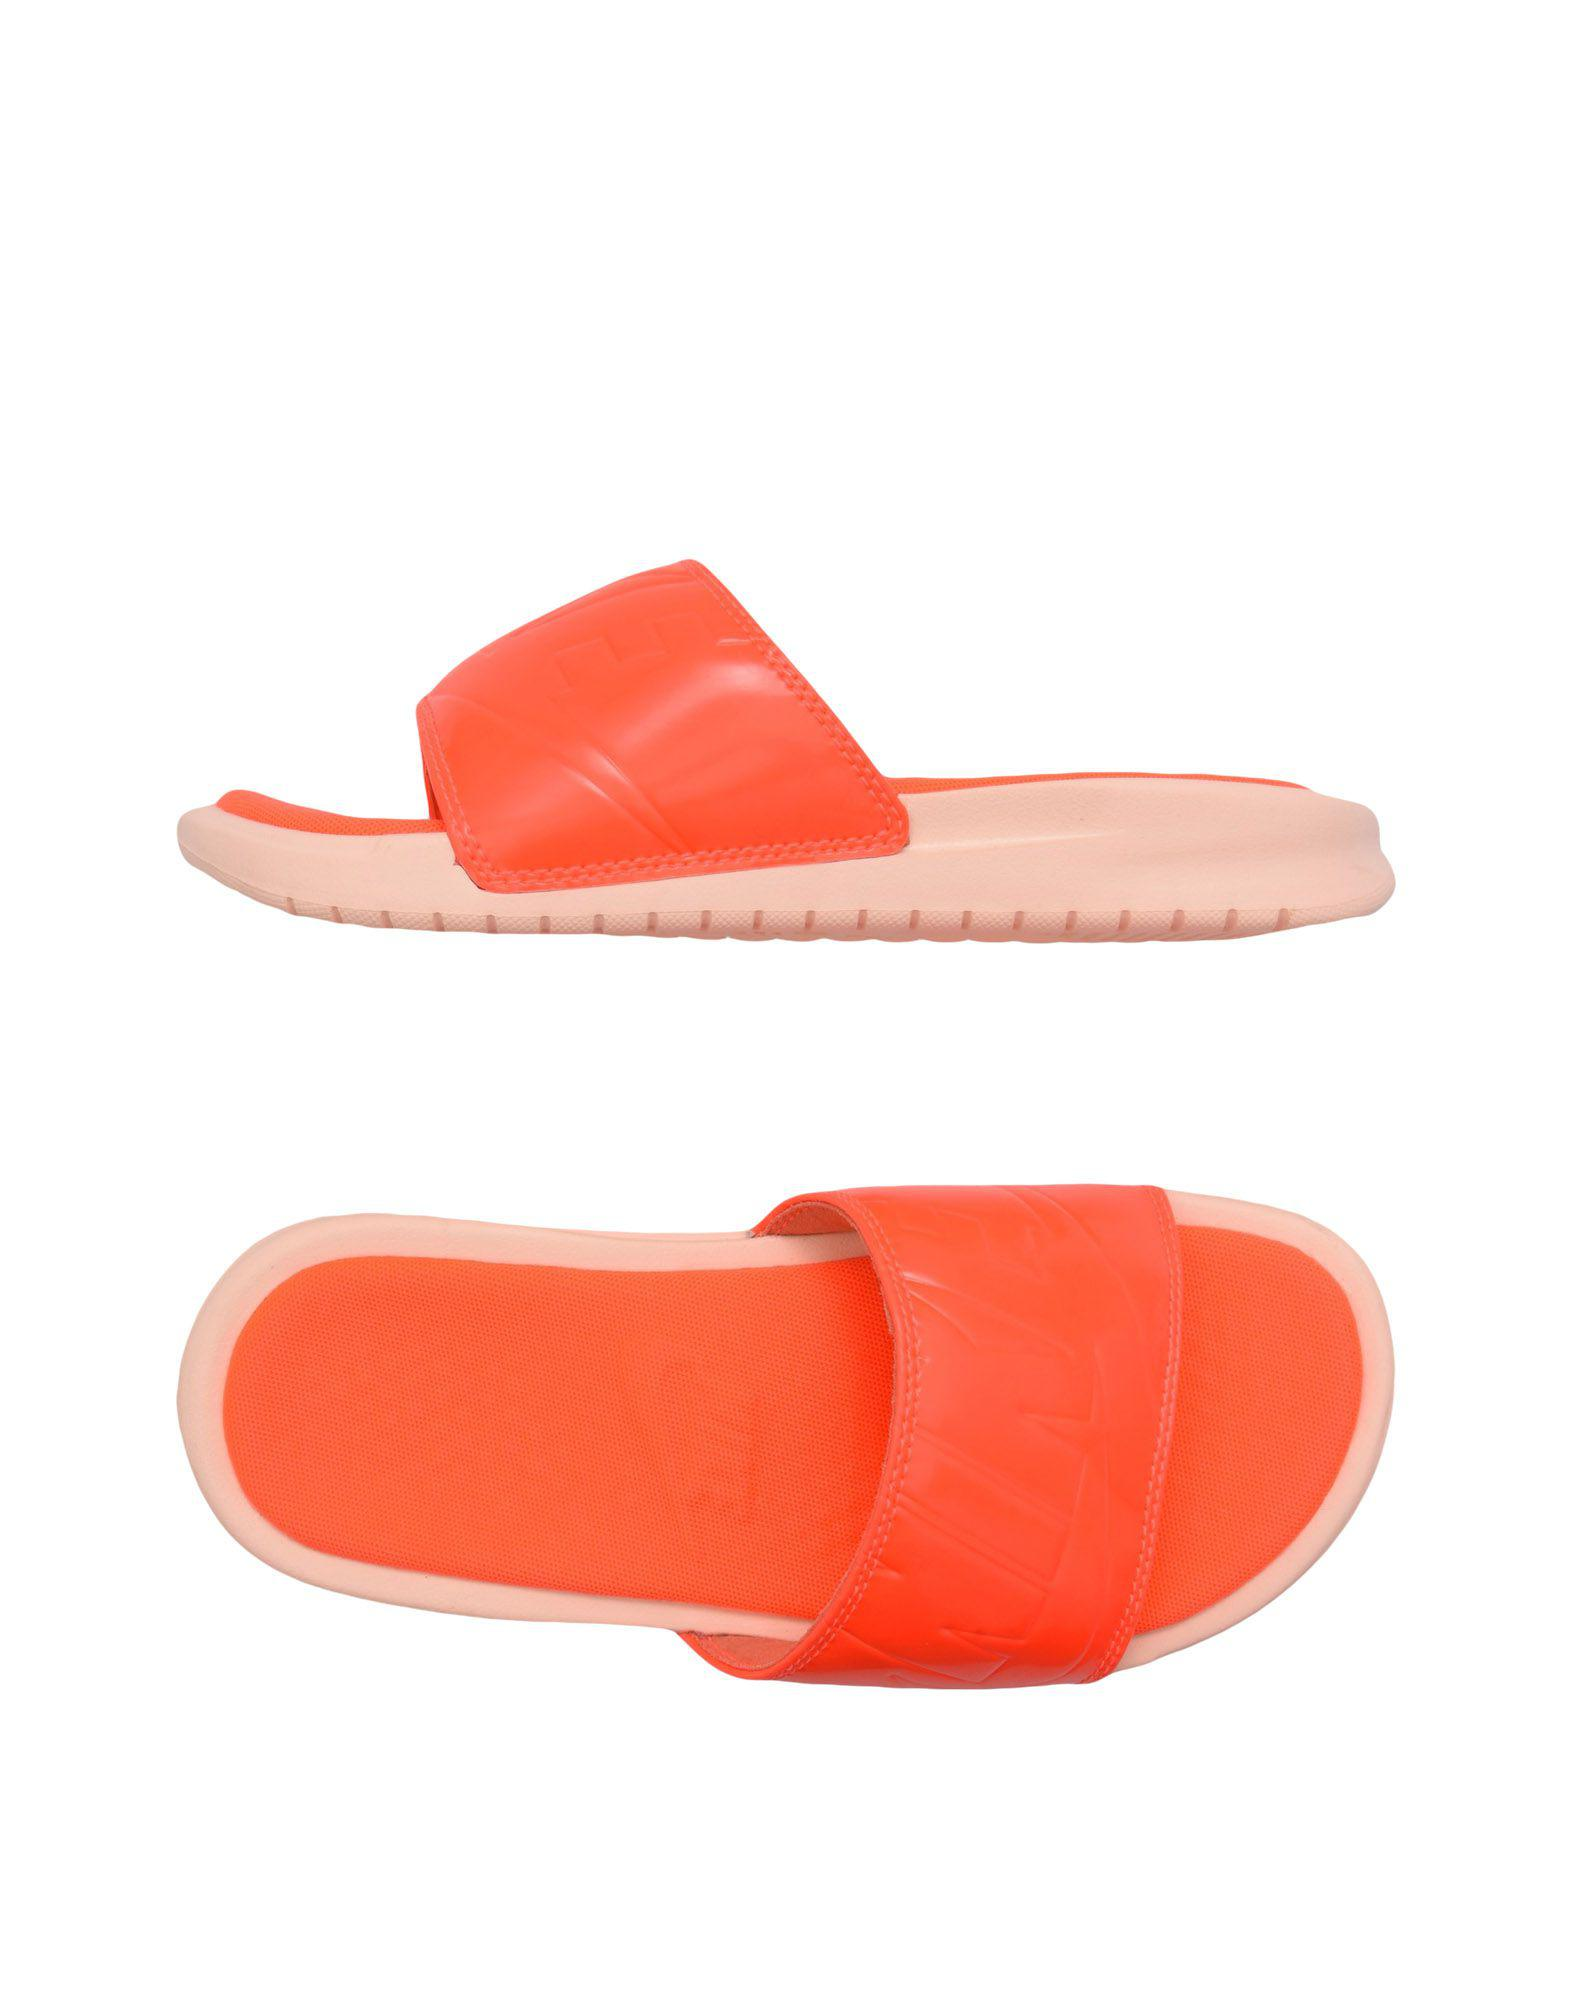 8897a3782 ... low price nike. womens orange sandals 039f4 a5787